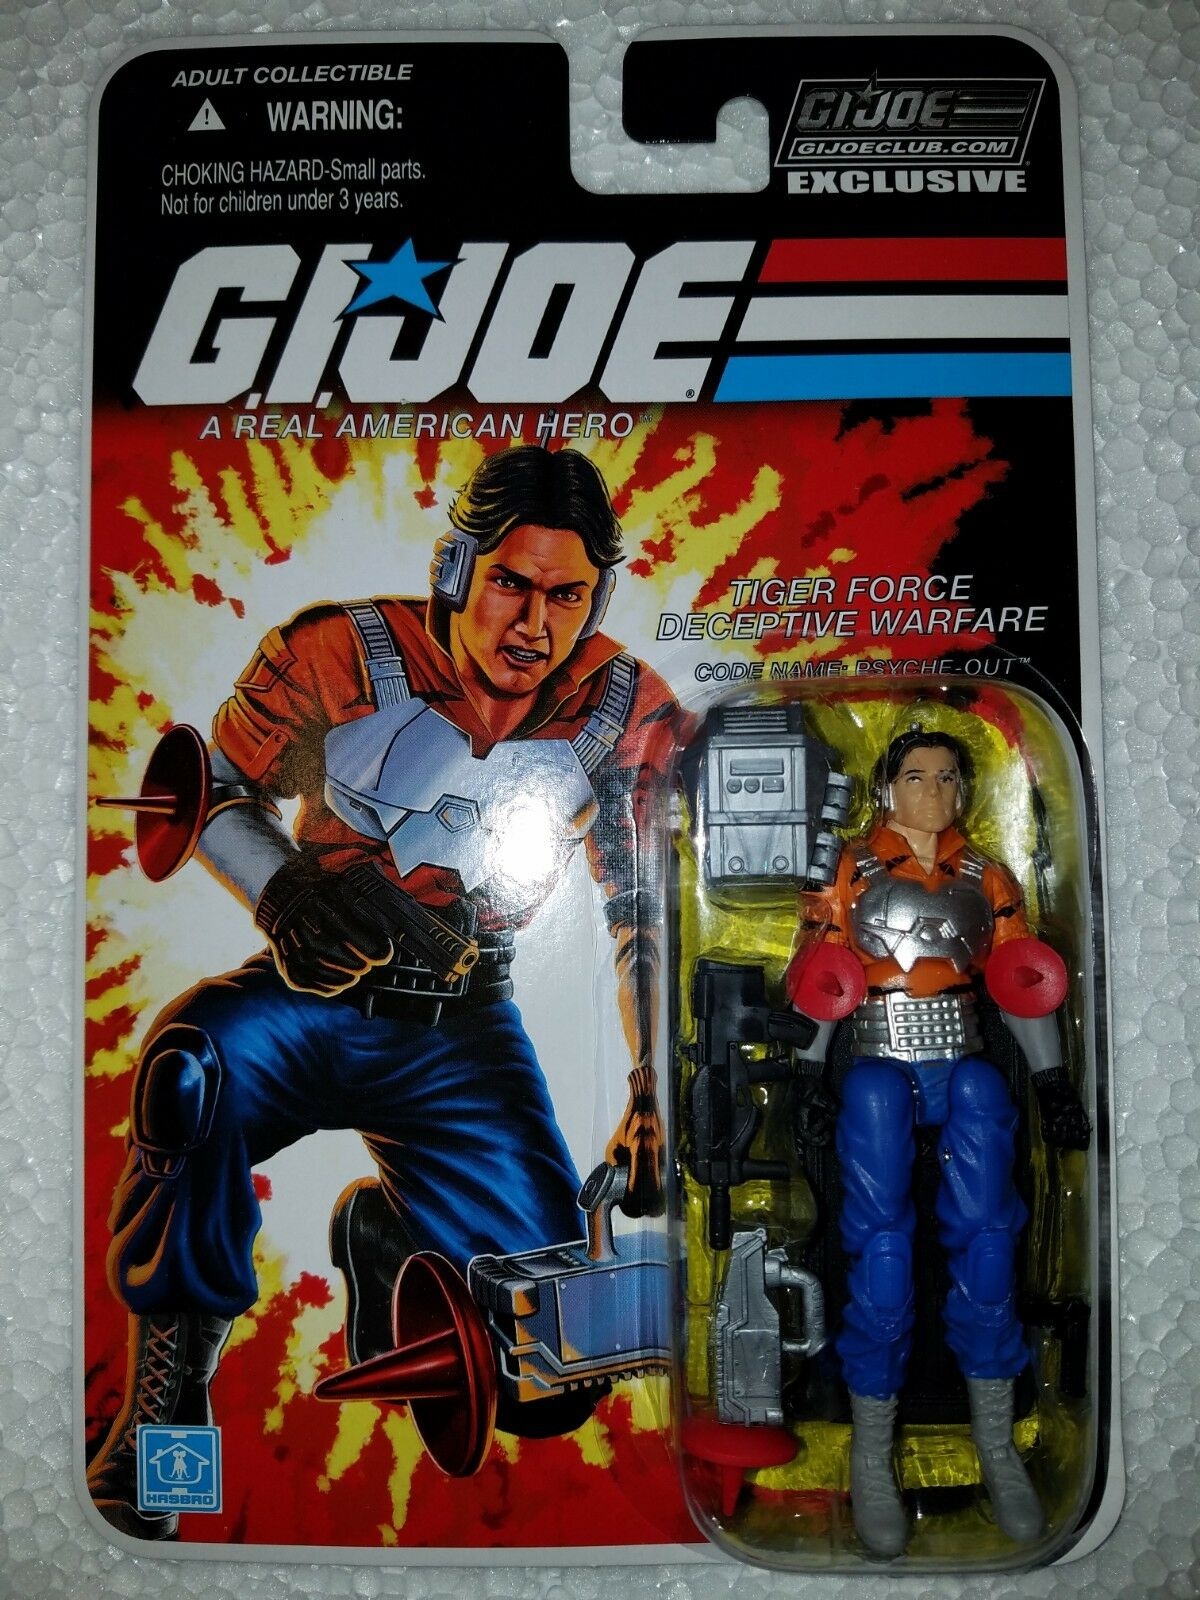 G.I.JOE EXCLUSIVE CLUB FSS The FINAL 12  PSYCHE-OUT - TIGER FORCE DECEPTIVE WAR